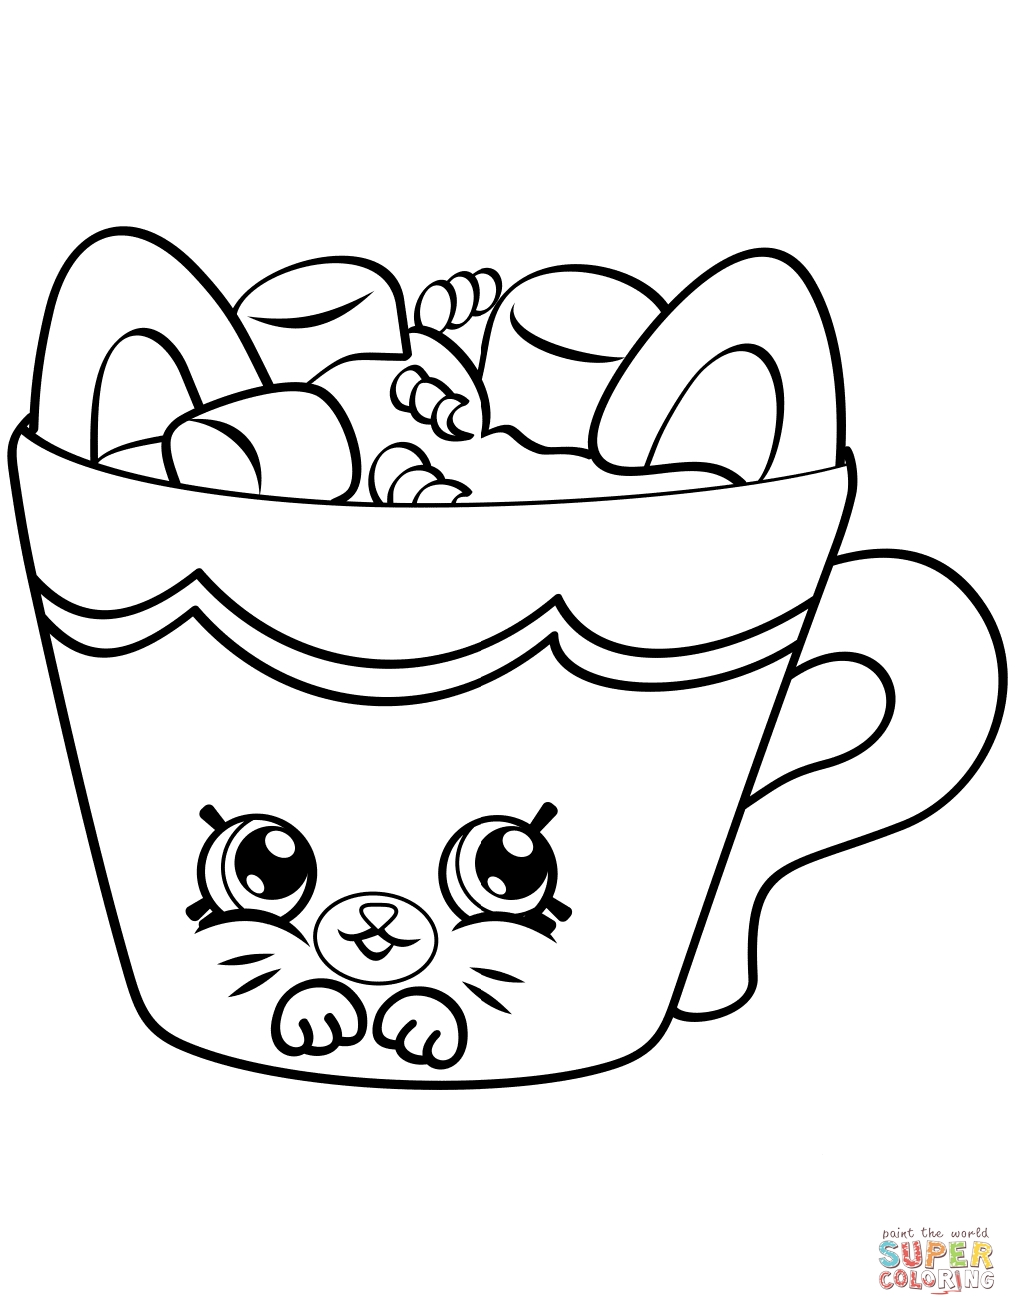 1017x1316 Shopkins Coloring Pages Limited Editions Collections